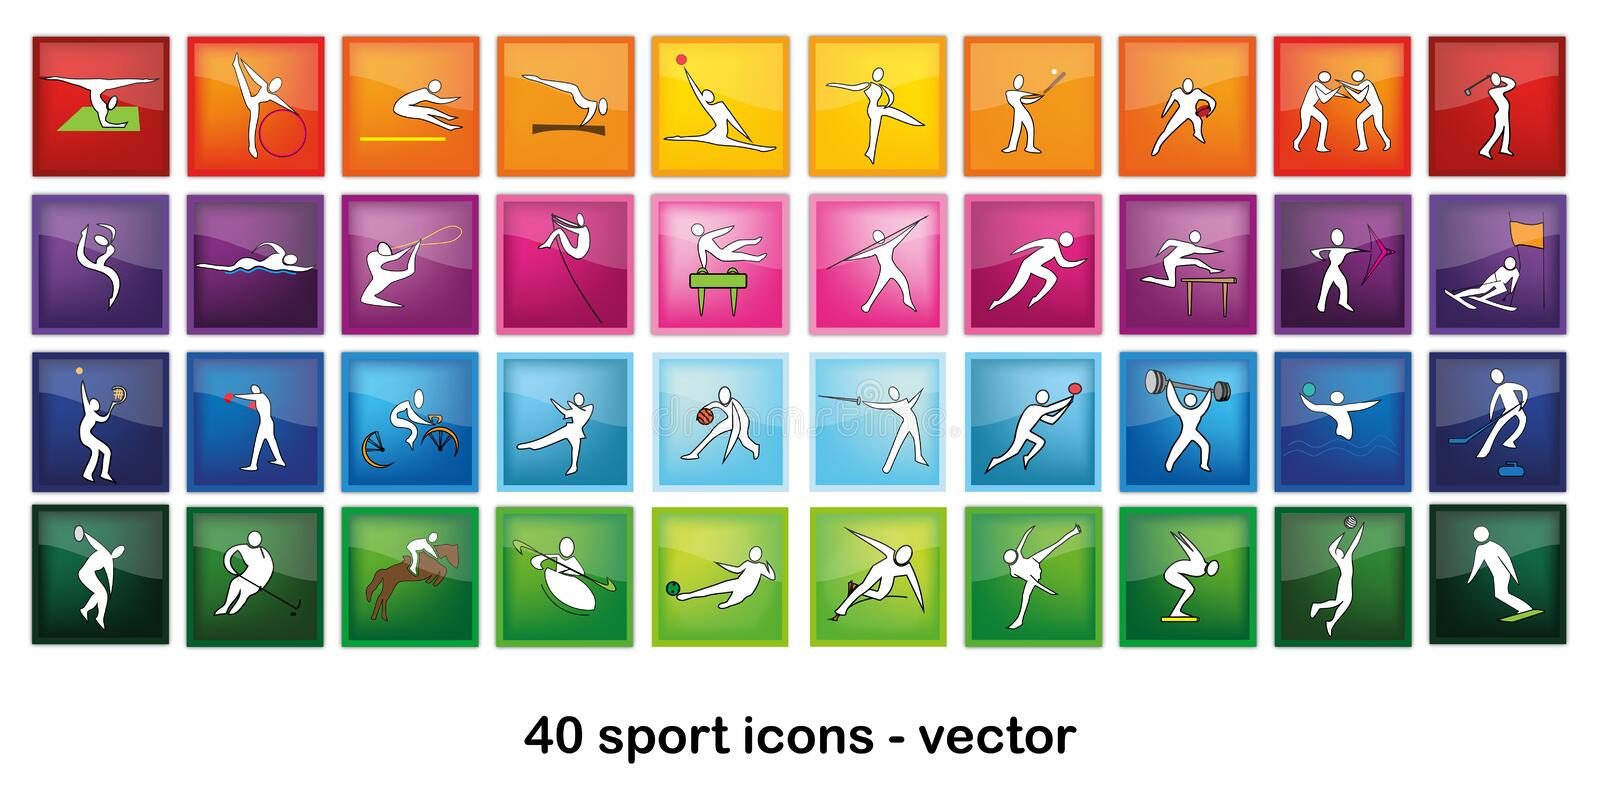 symbolssport vektor illustrationer